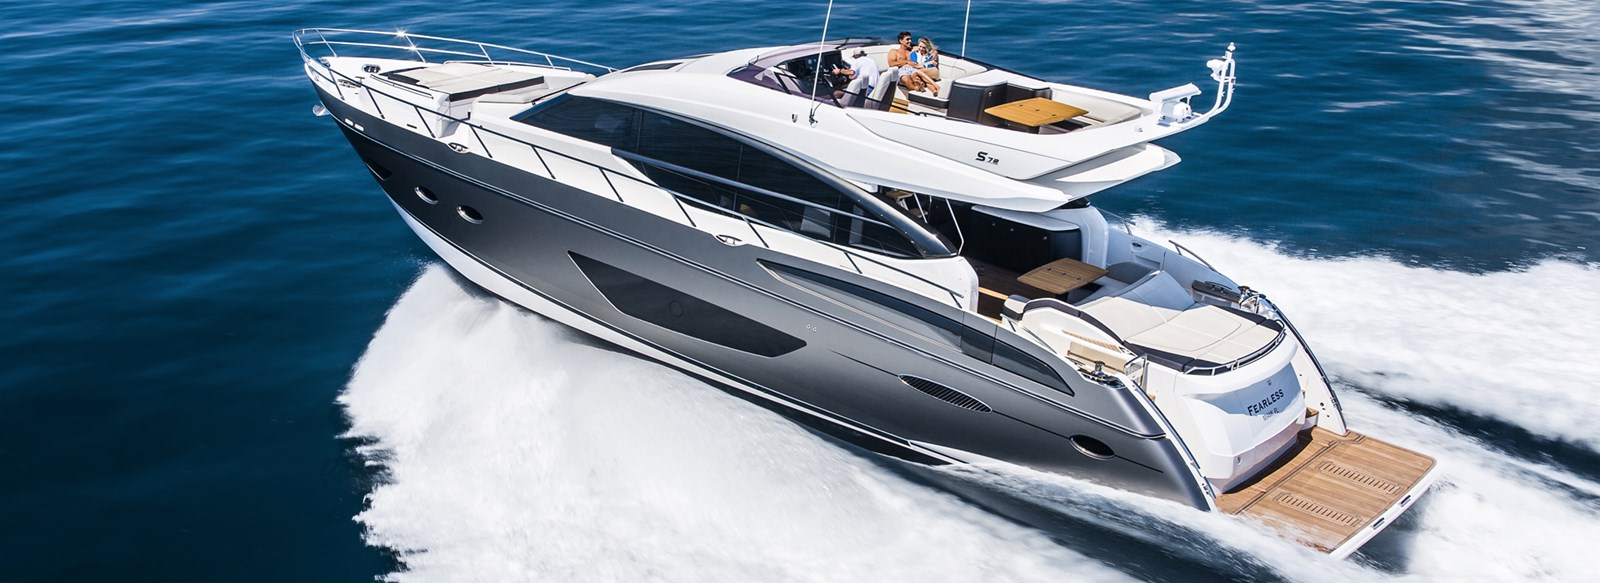 New Princess S72 Yachts For Sale